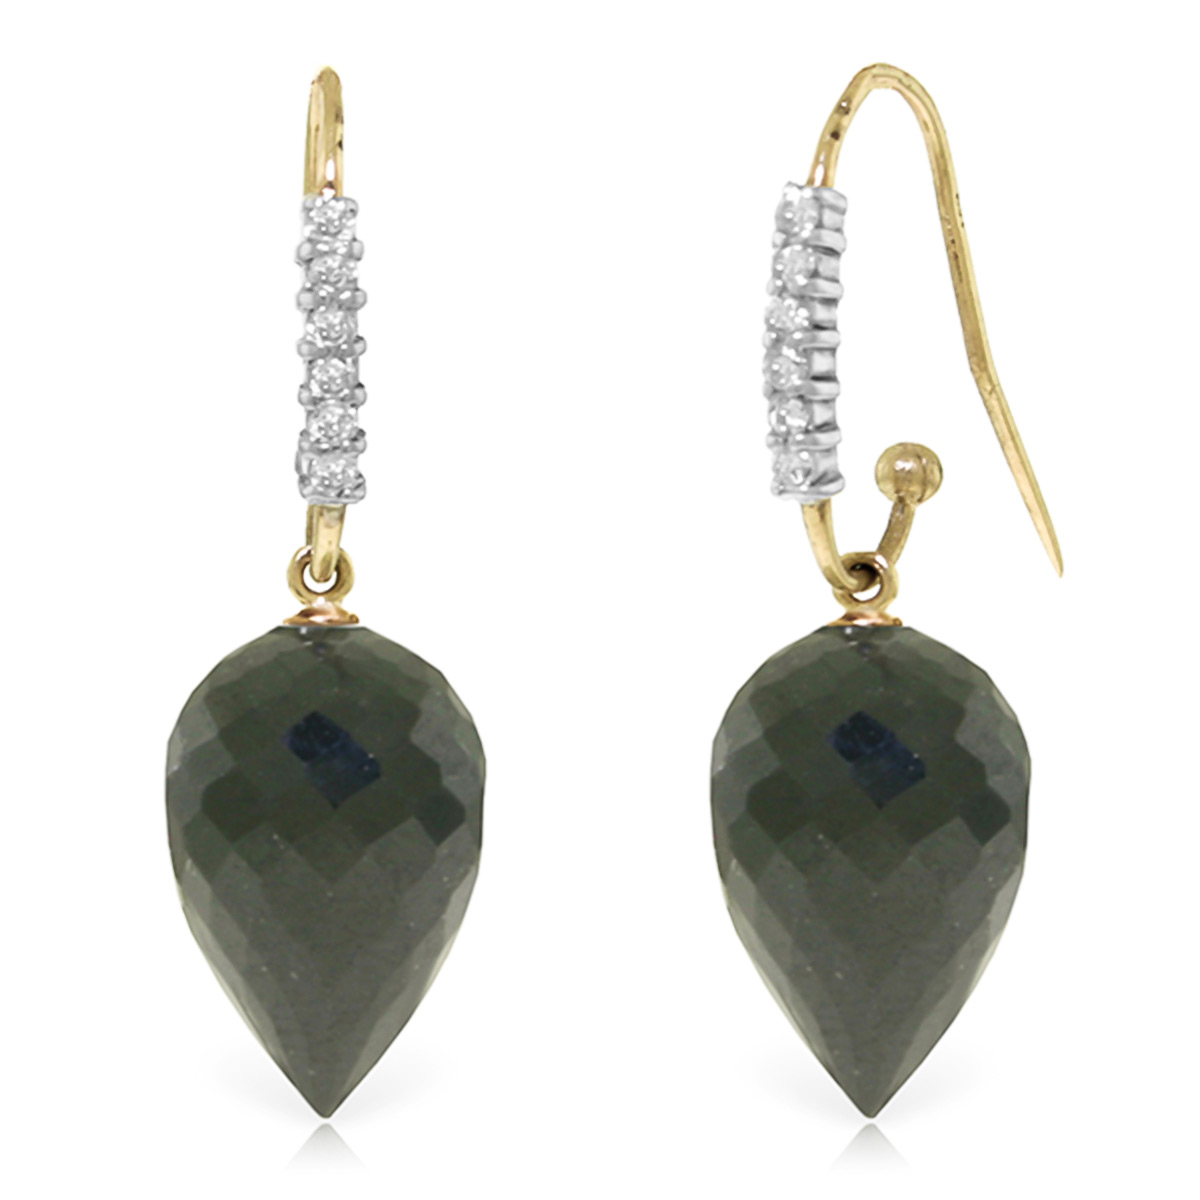 Black Spinel Drop Earrings 24.68 ctw in 9ct Gold